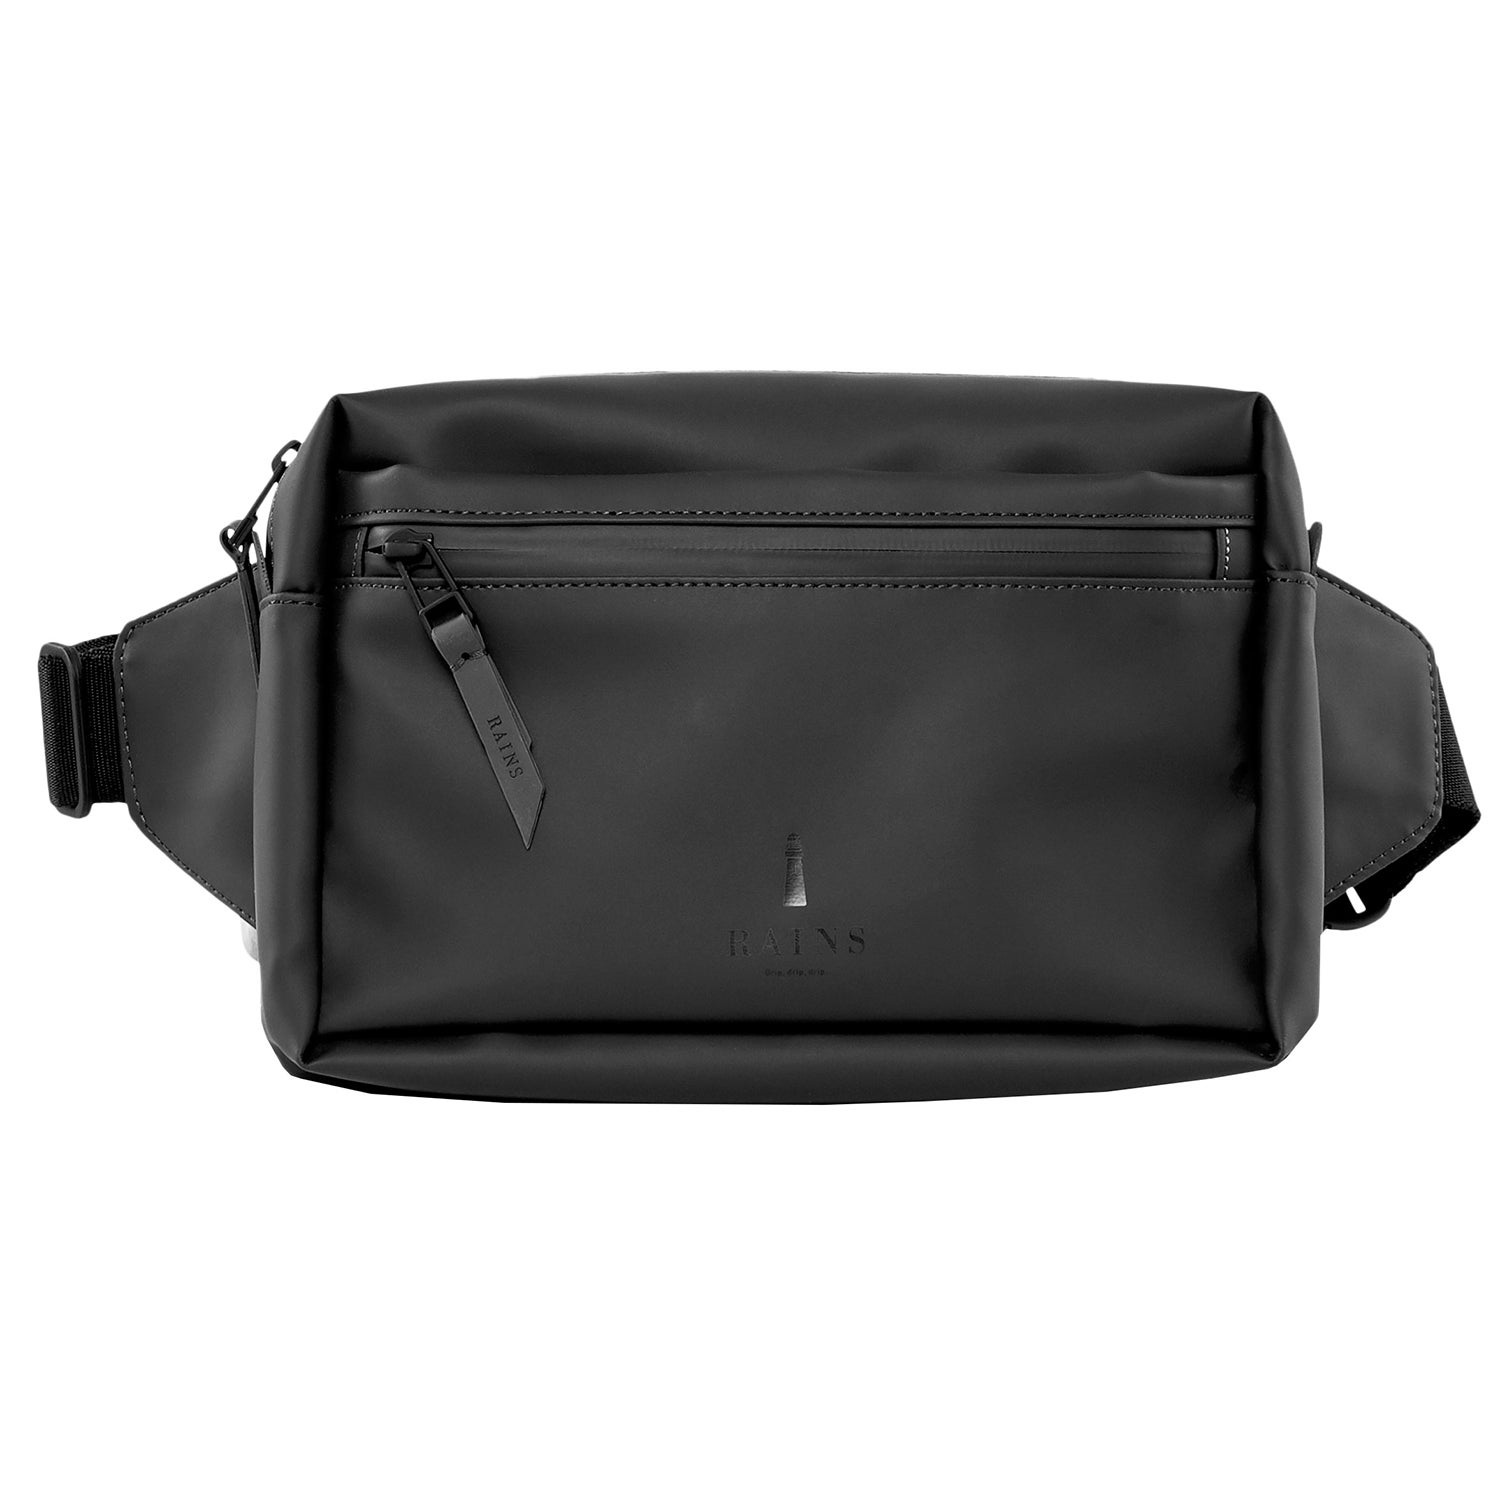 Rains Waist Bum Bag